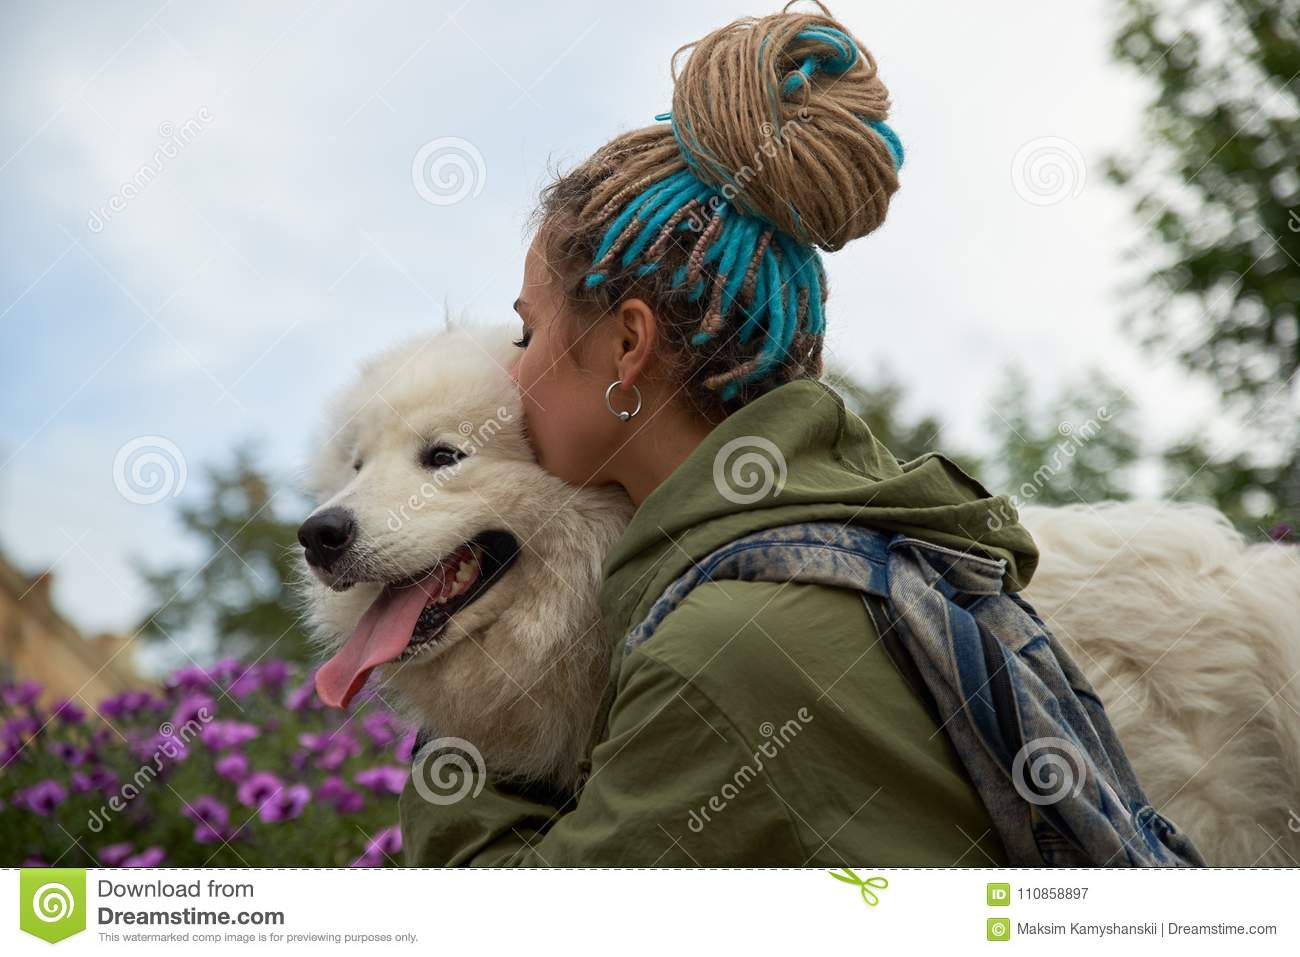 Modern stylish young girl with dreadlocks on her head hugs and kisses her beloved dog snow-white Samoyed.